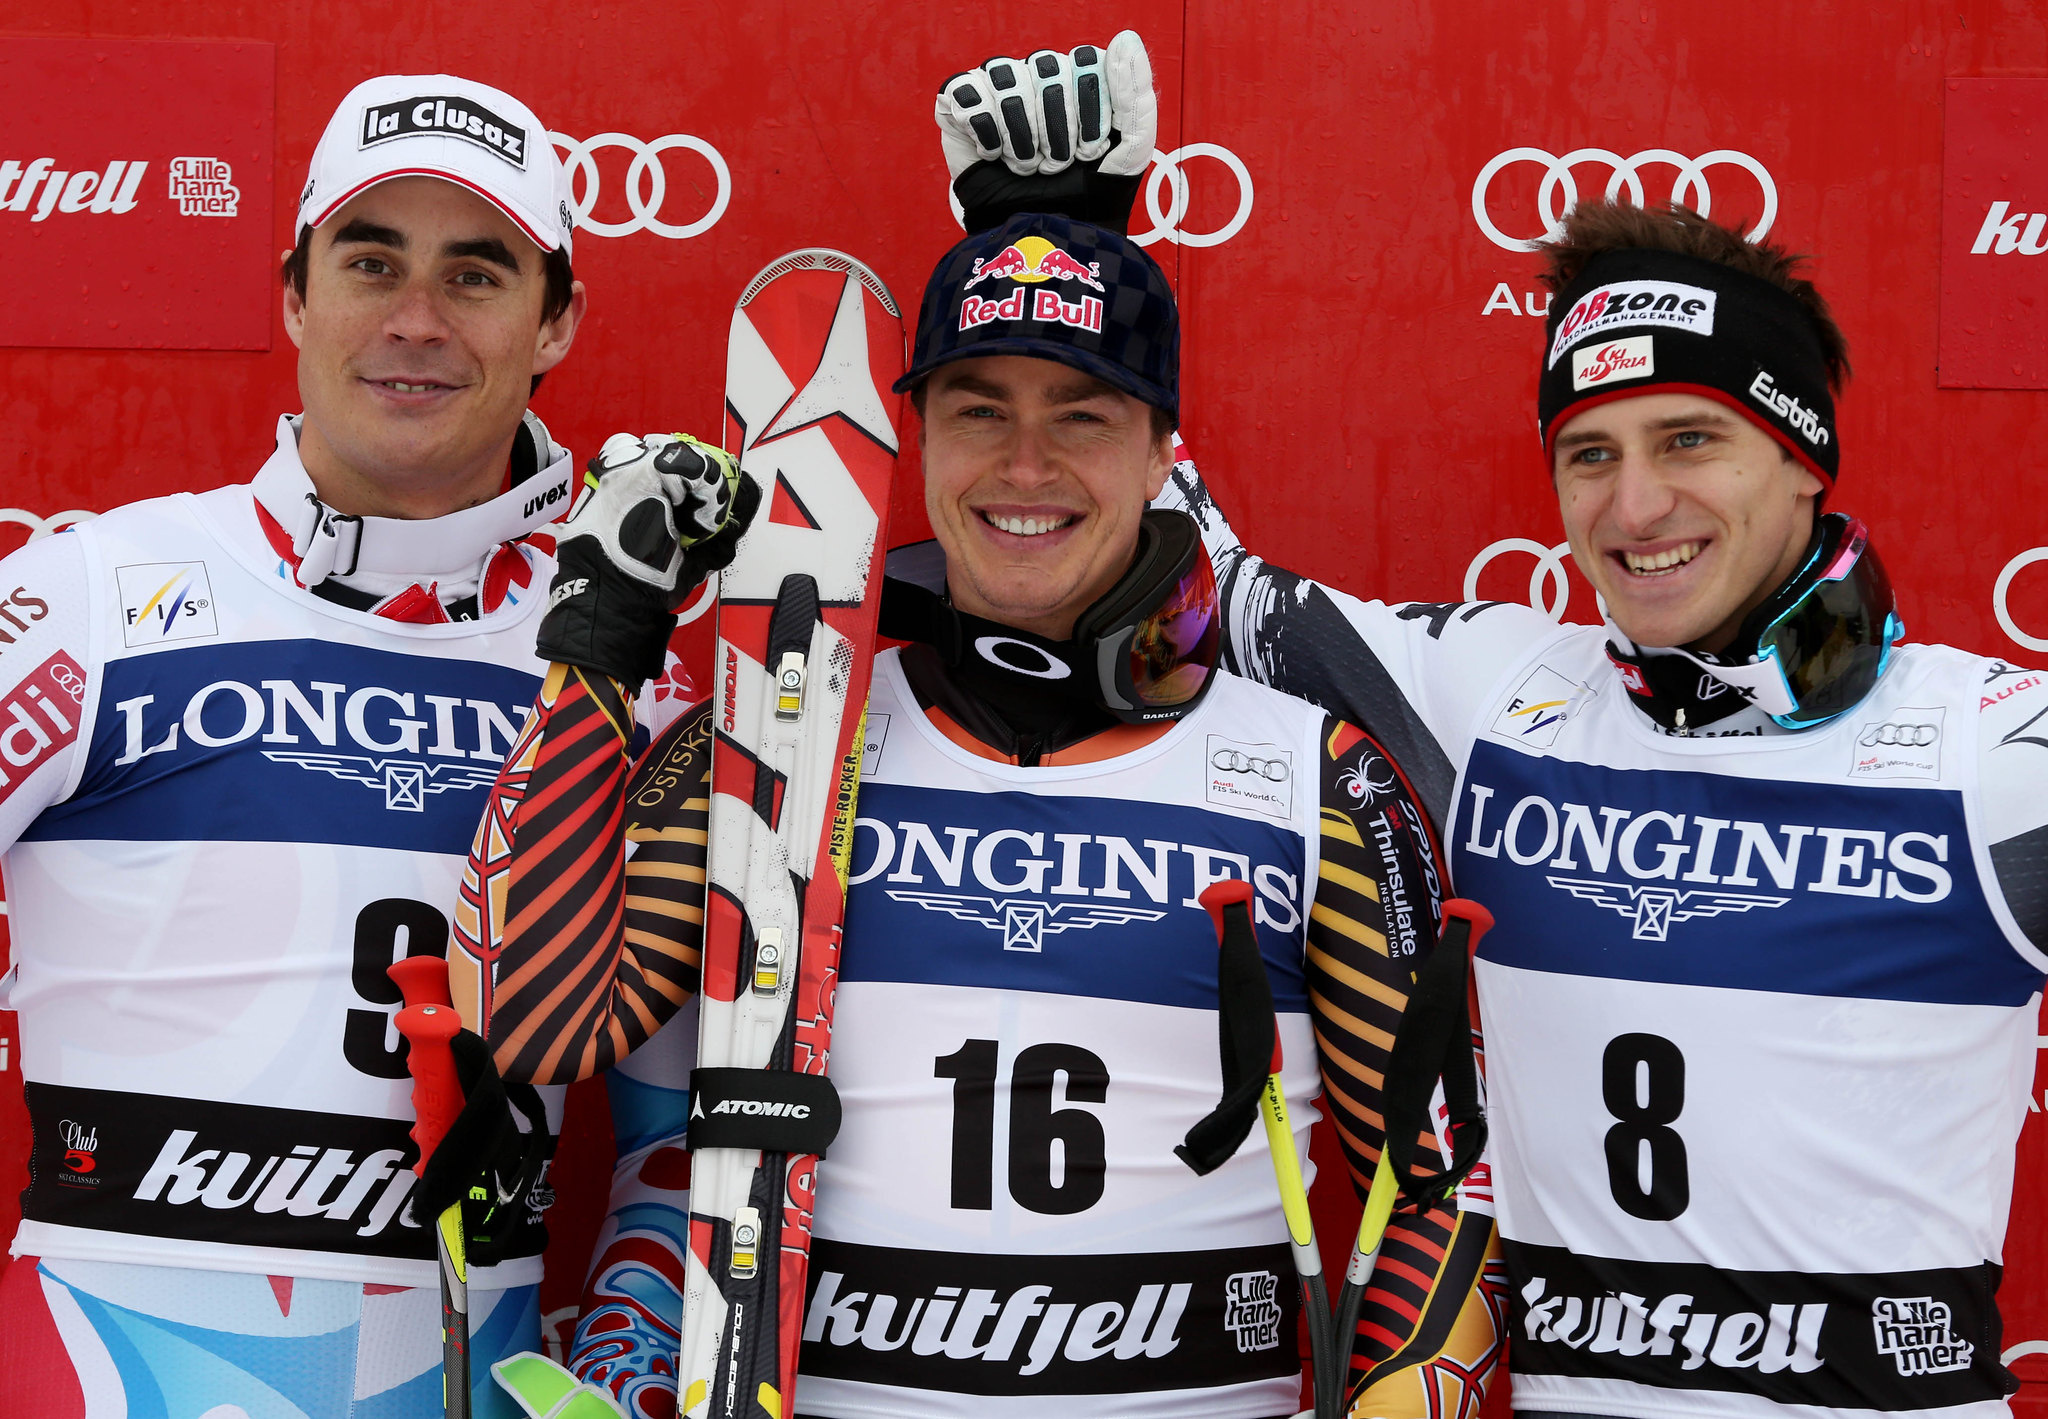 Guay stands atop the podium with Clarey and Mayer in Kvitfjell, NOR